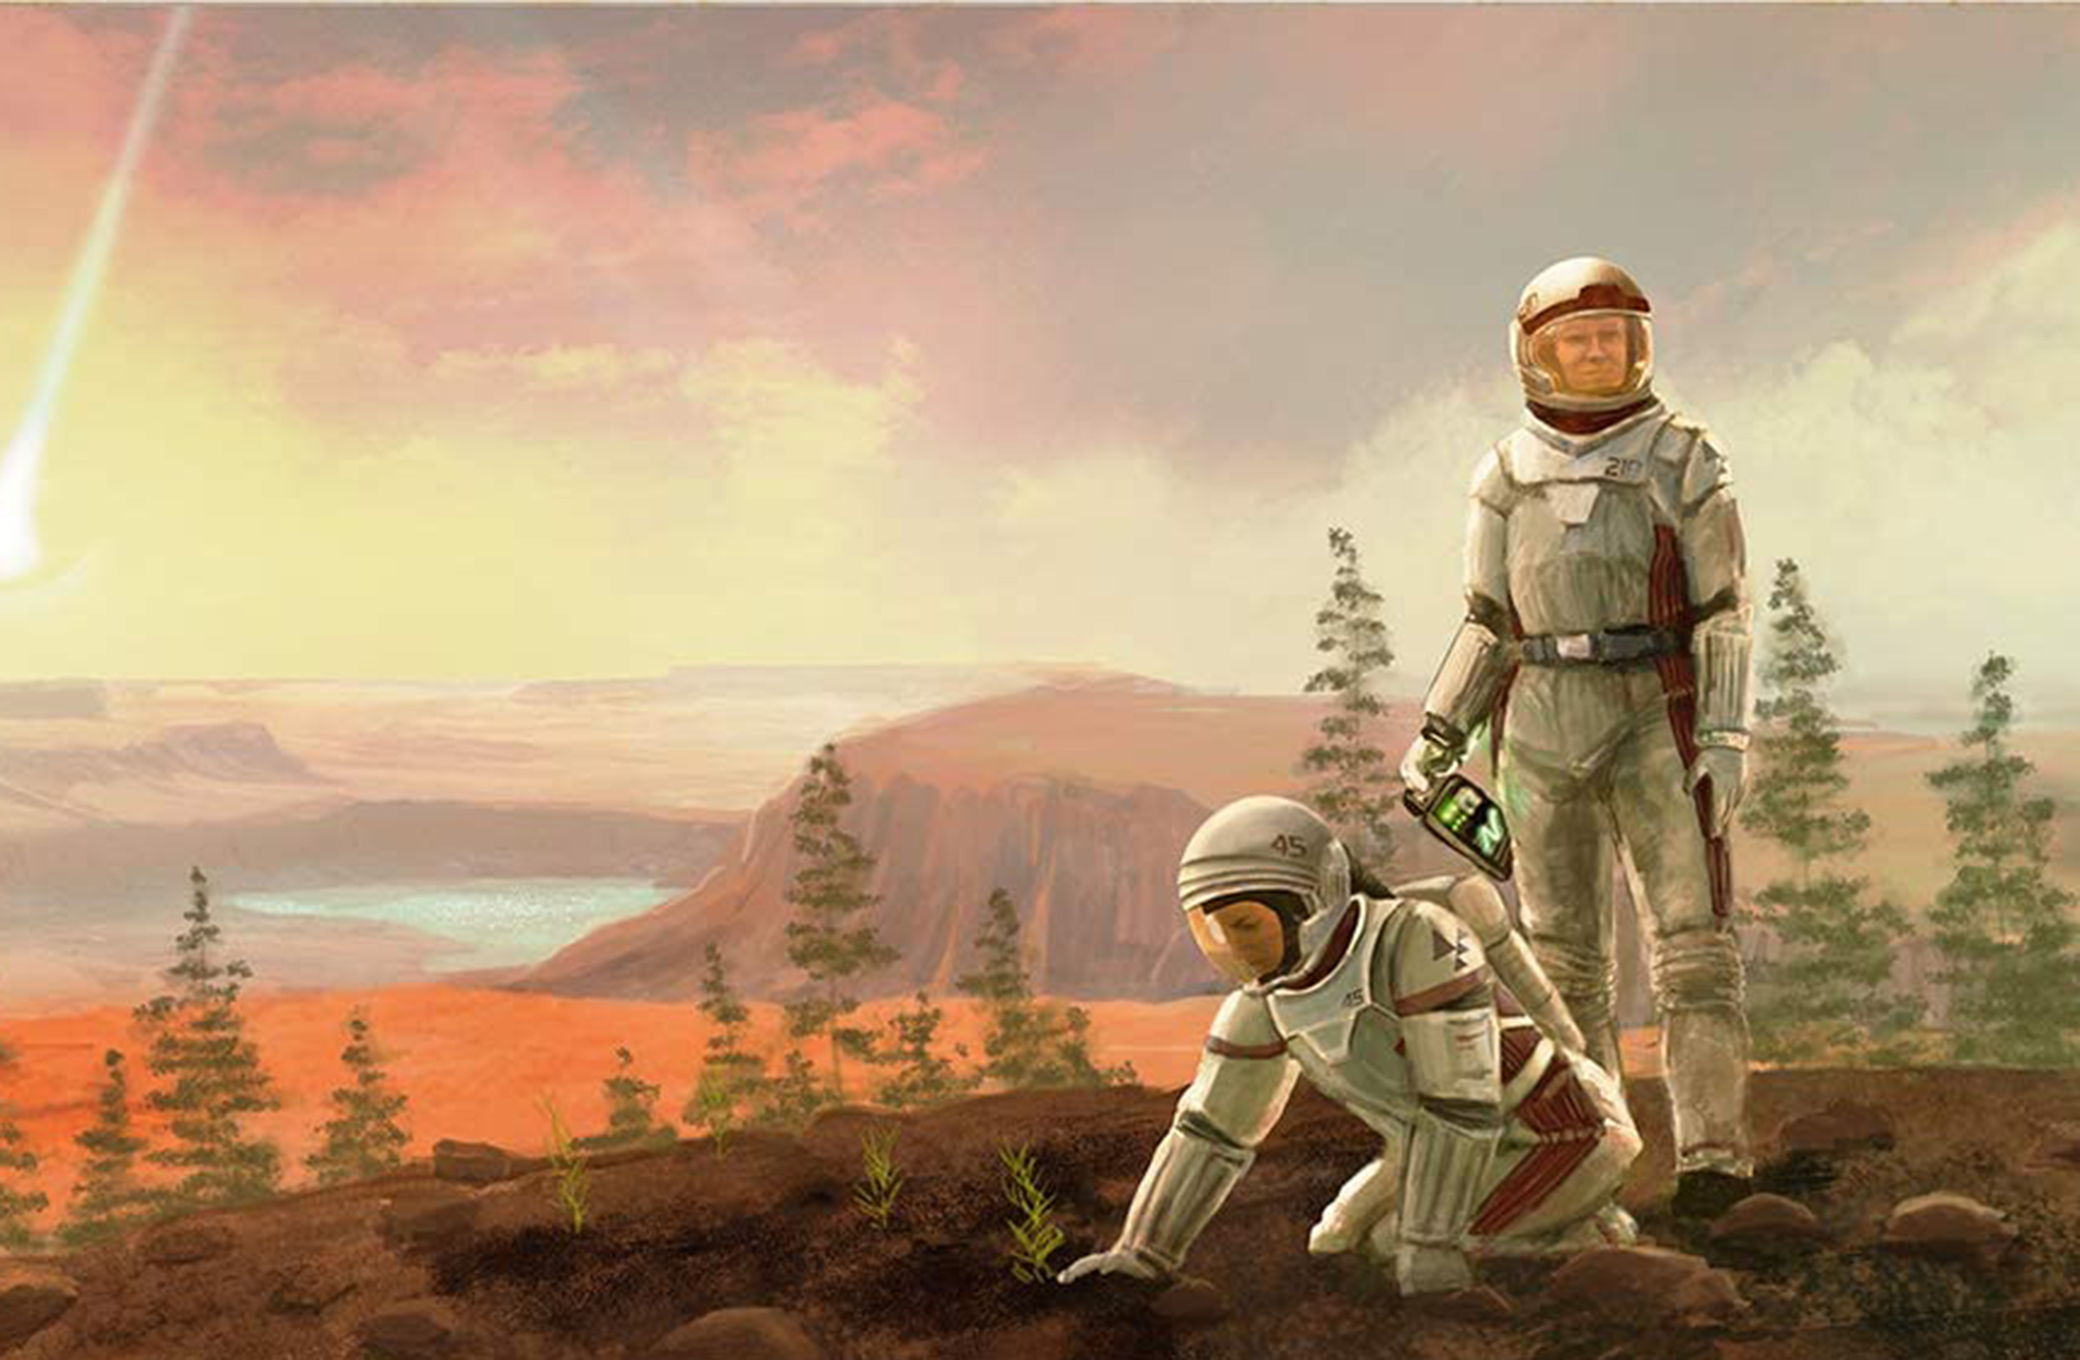 Cover art for Terraforming Mars shows two astronauts on the red planet's hillside, surrounded by green trees.